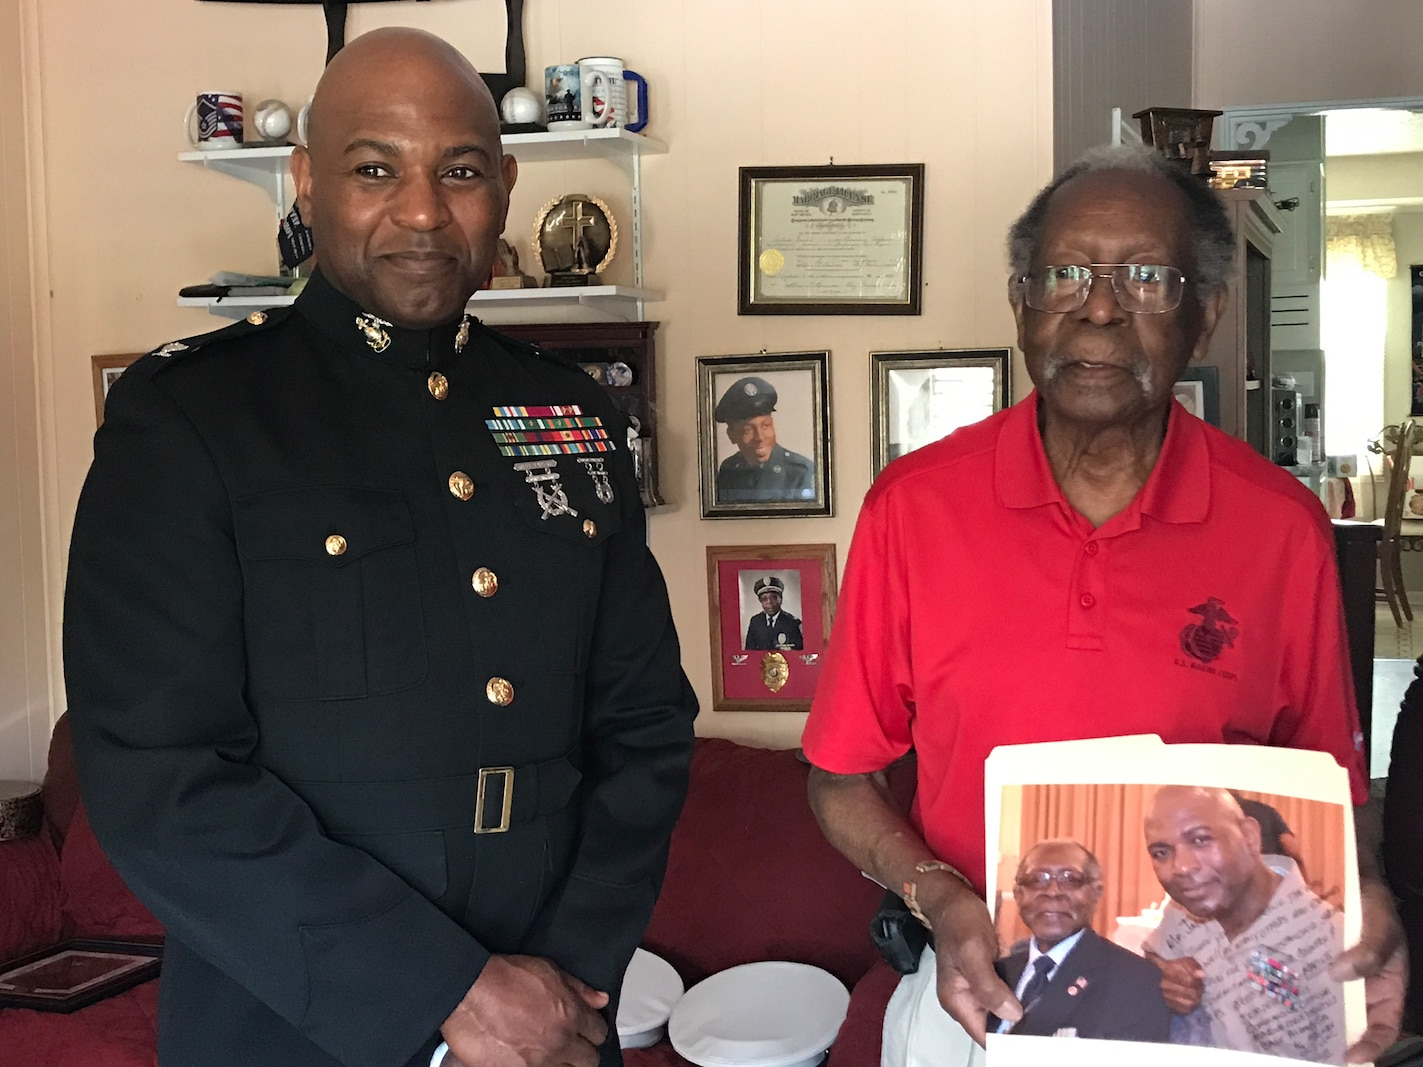 For a young man who grew up in Dayton, Ohio, and enlisted in the Marine Corps, he never imagined his path would end 33 years later as the commanding officer of Marine Corps Logistics Base Albany.